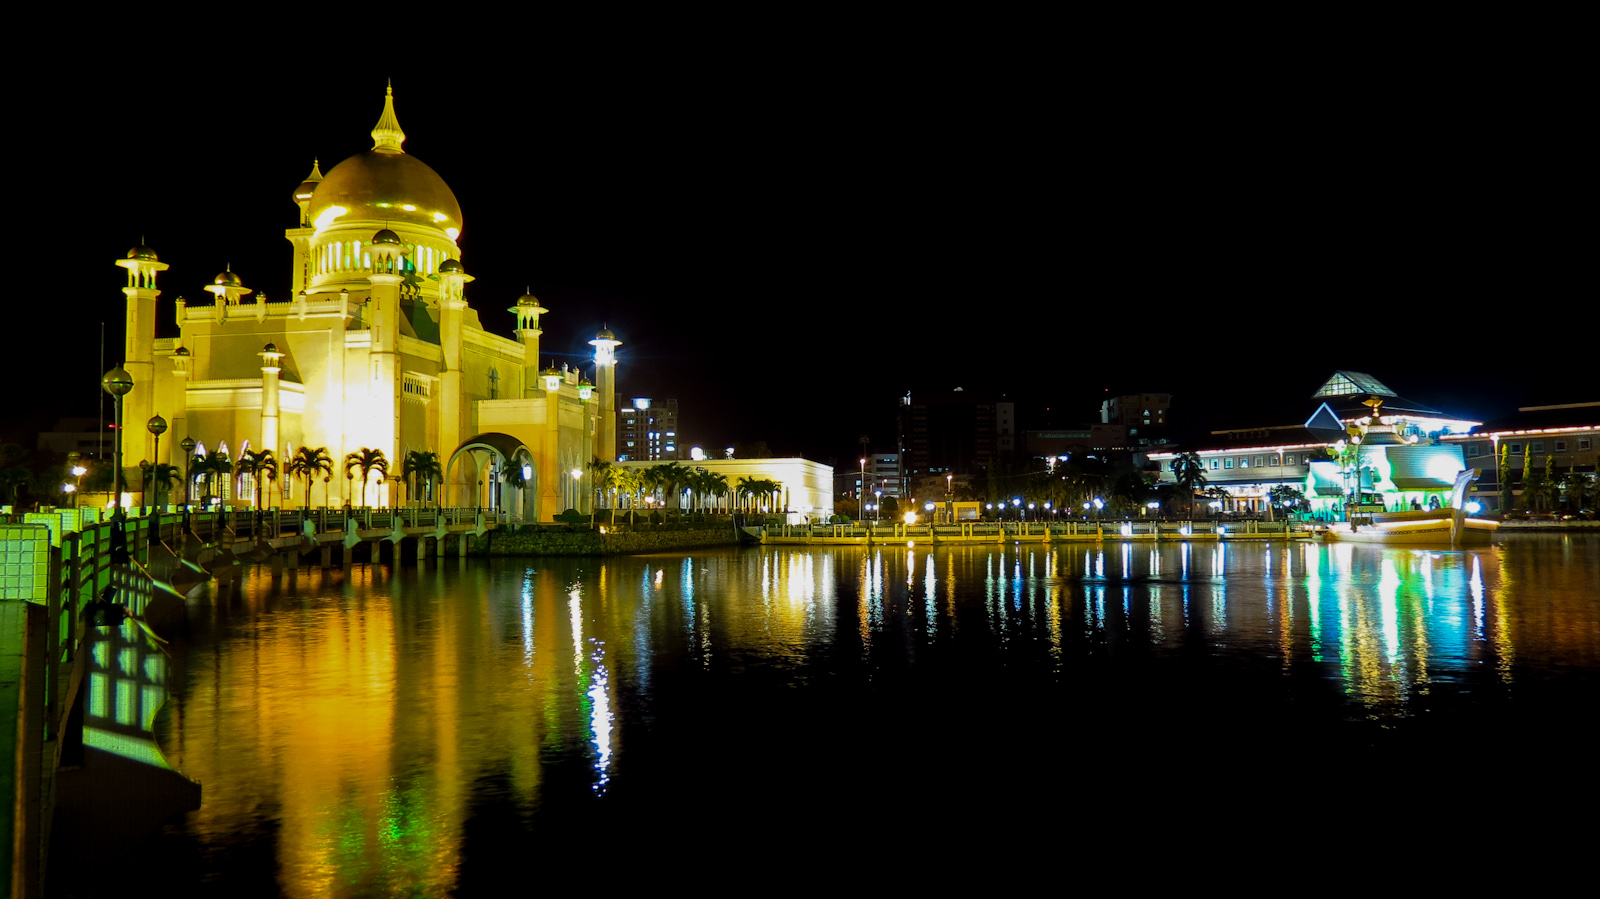 omar-ali-saifuddien-mosque-and-lake-night-reflection